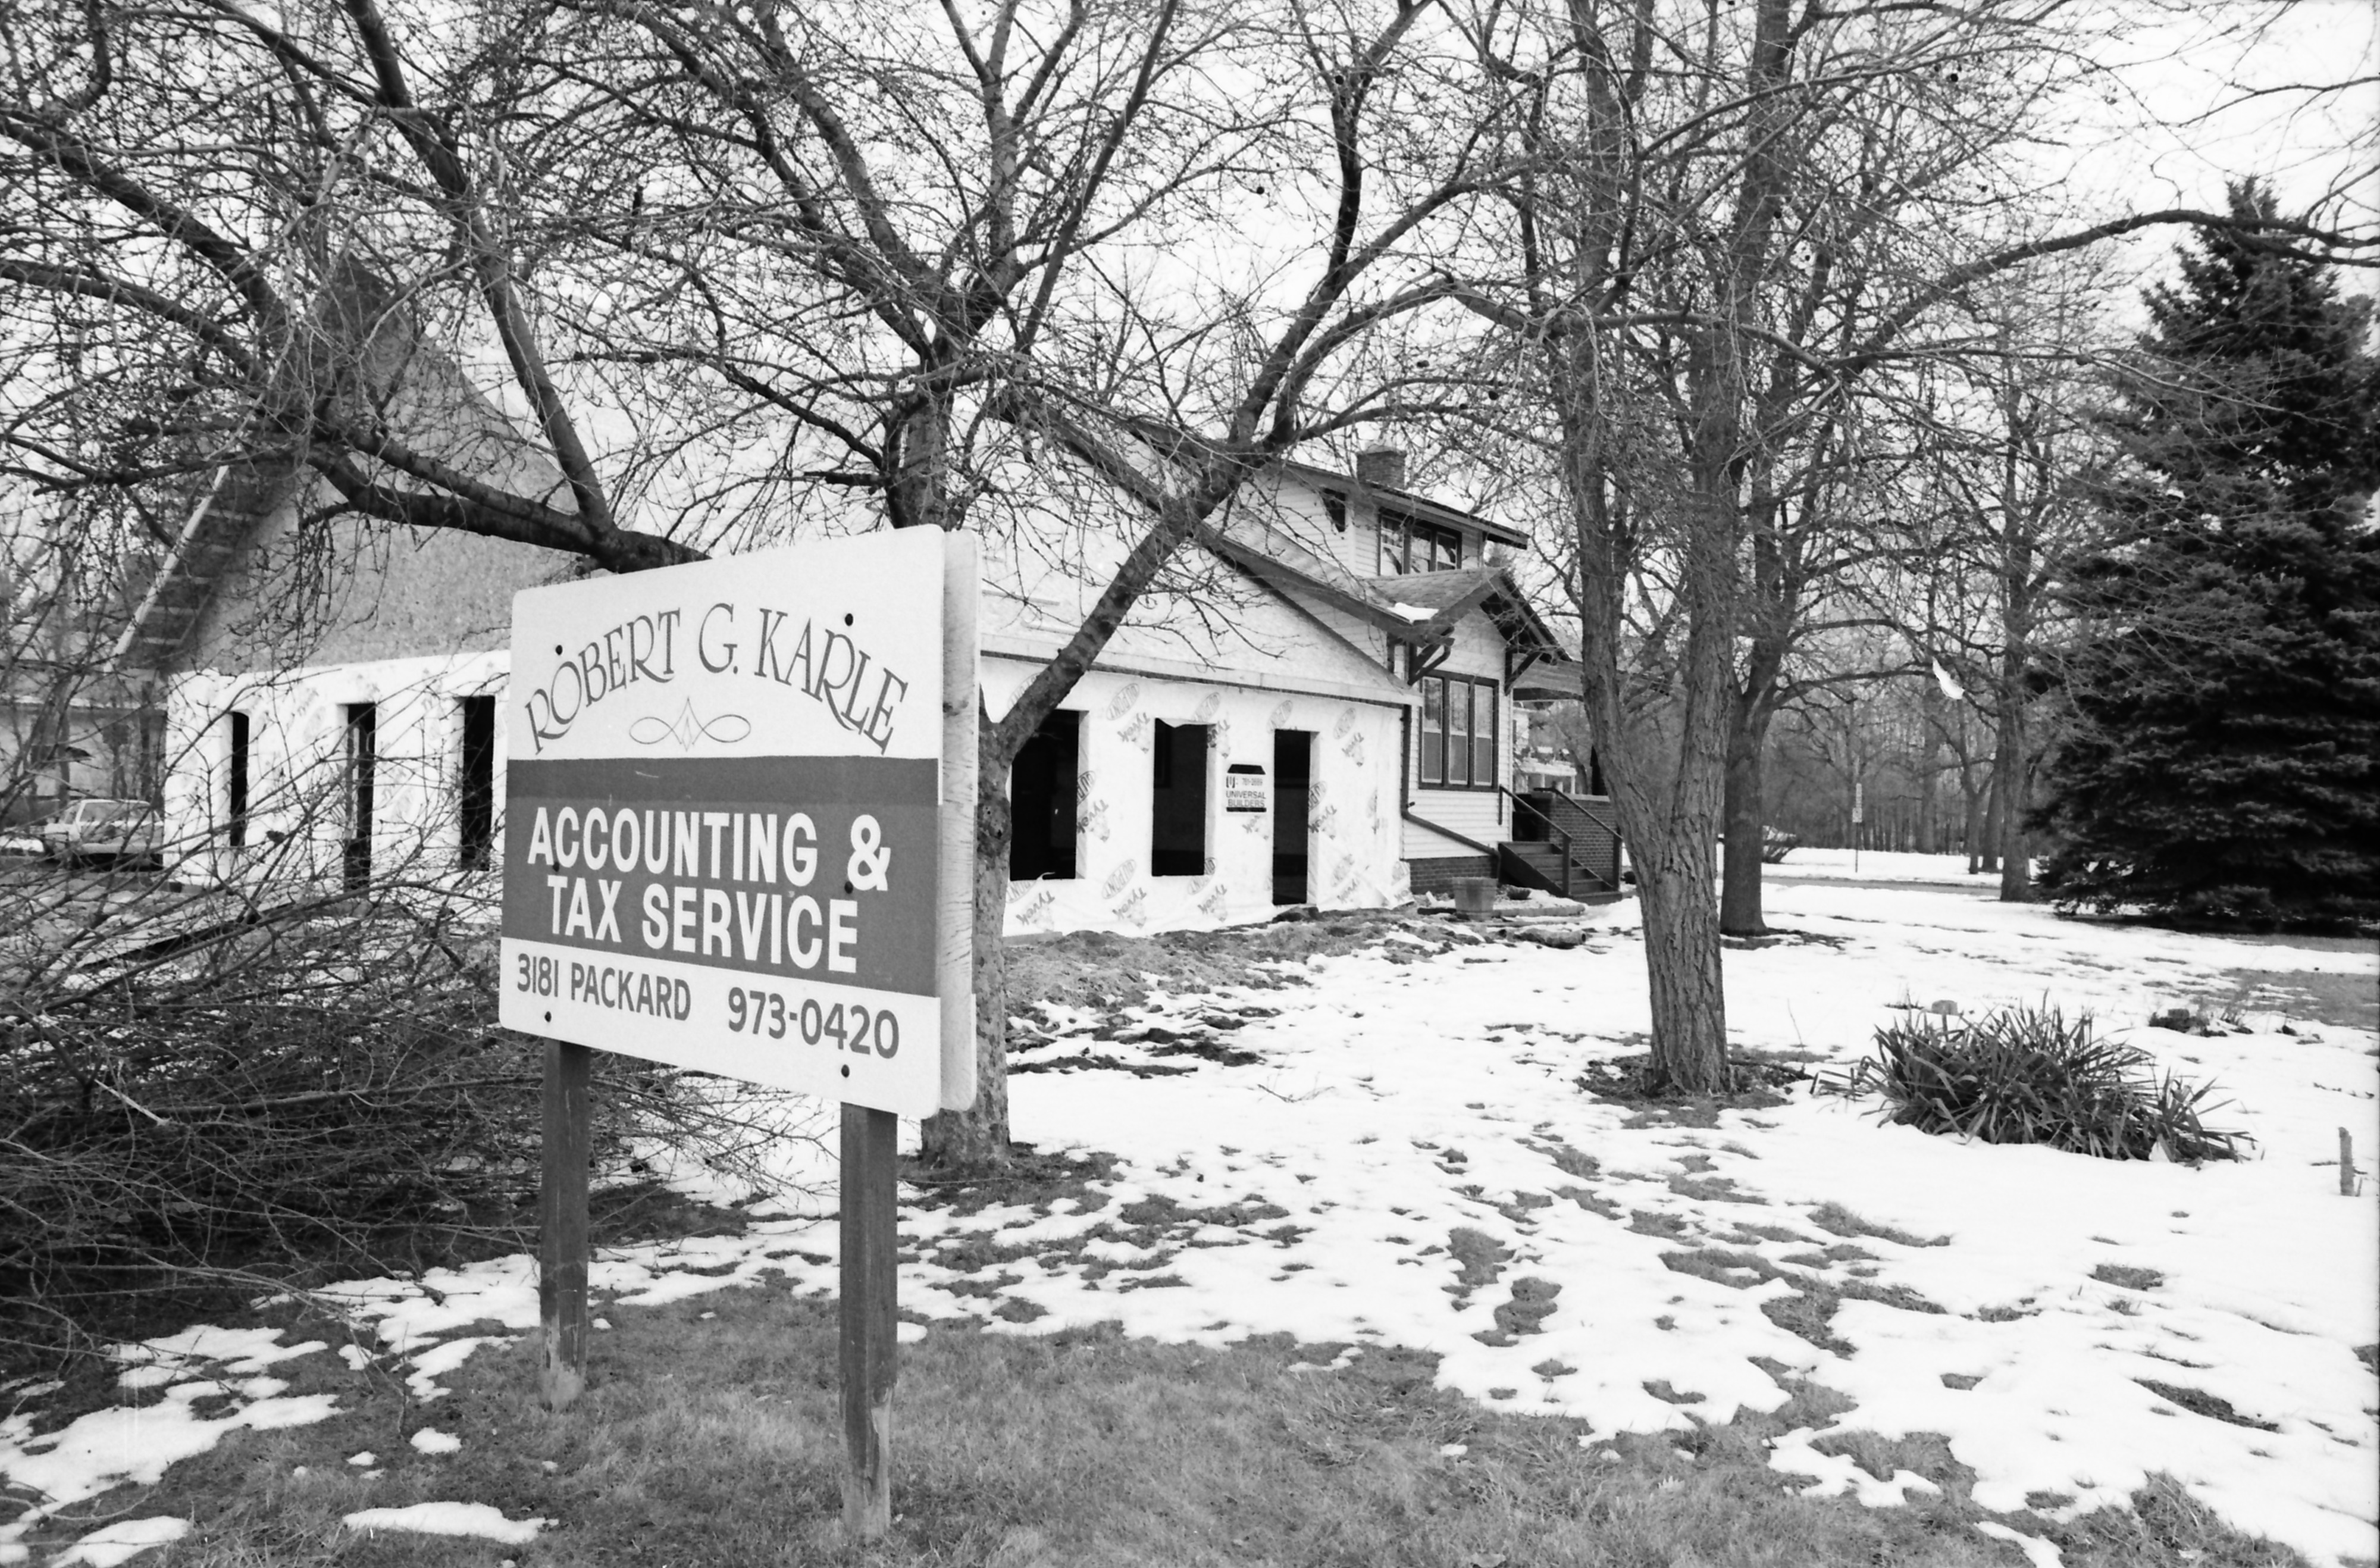 Robert G. Karle Accounting & Tax Service Sign, February 1992 image